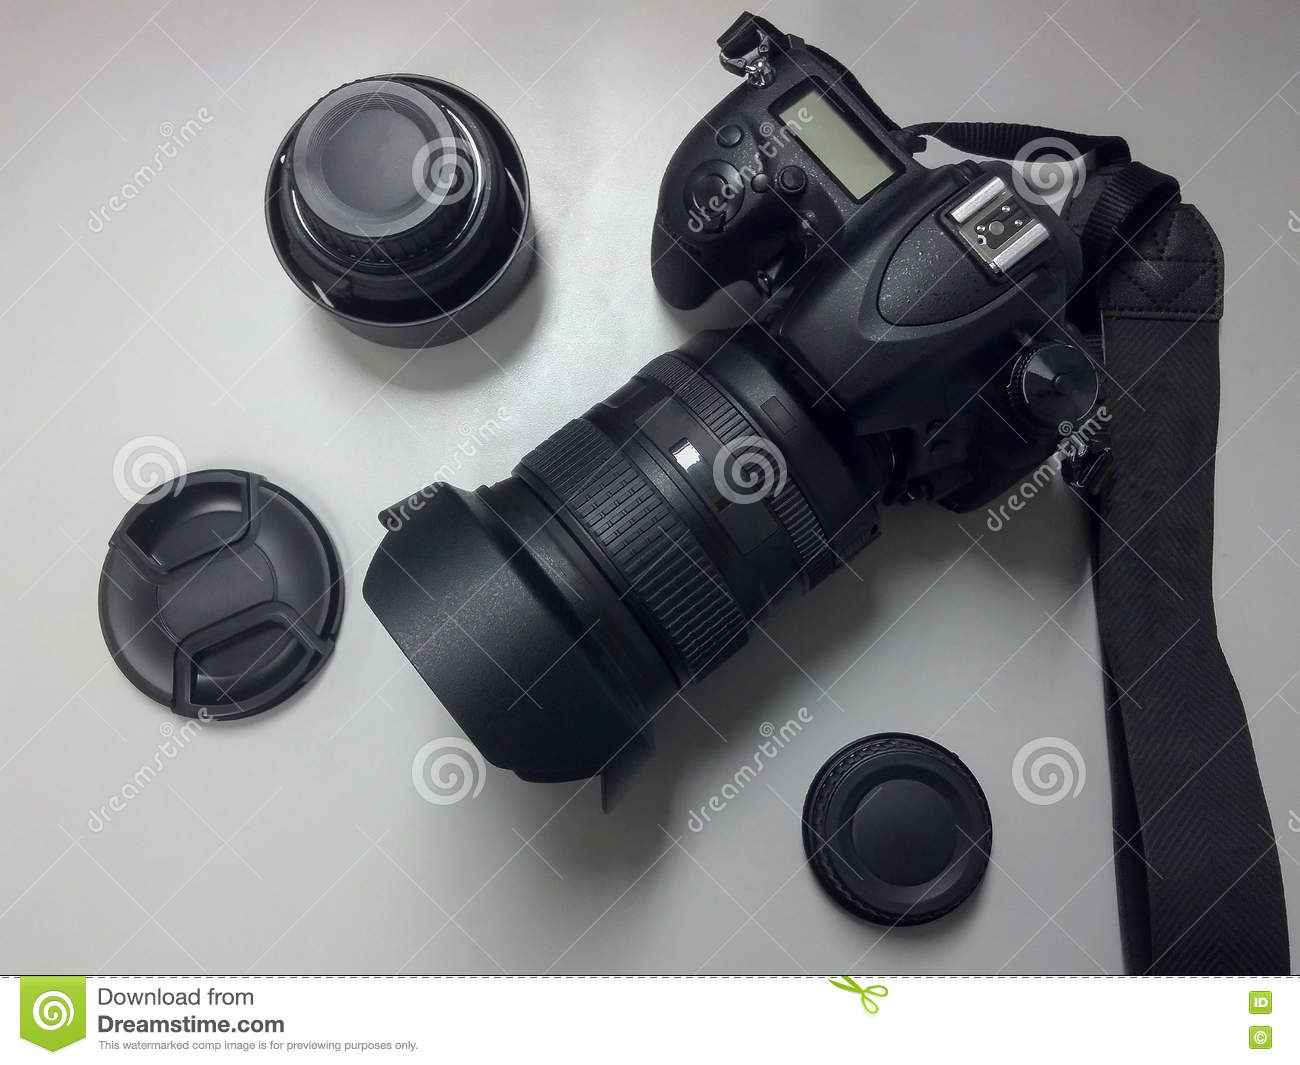 Camera Accessories For Dslr Cameras dslr camera top view with lens and accessories stock photo image accessories